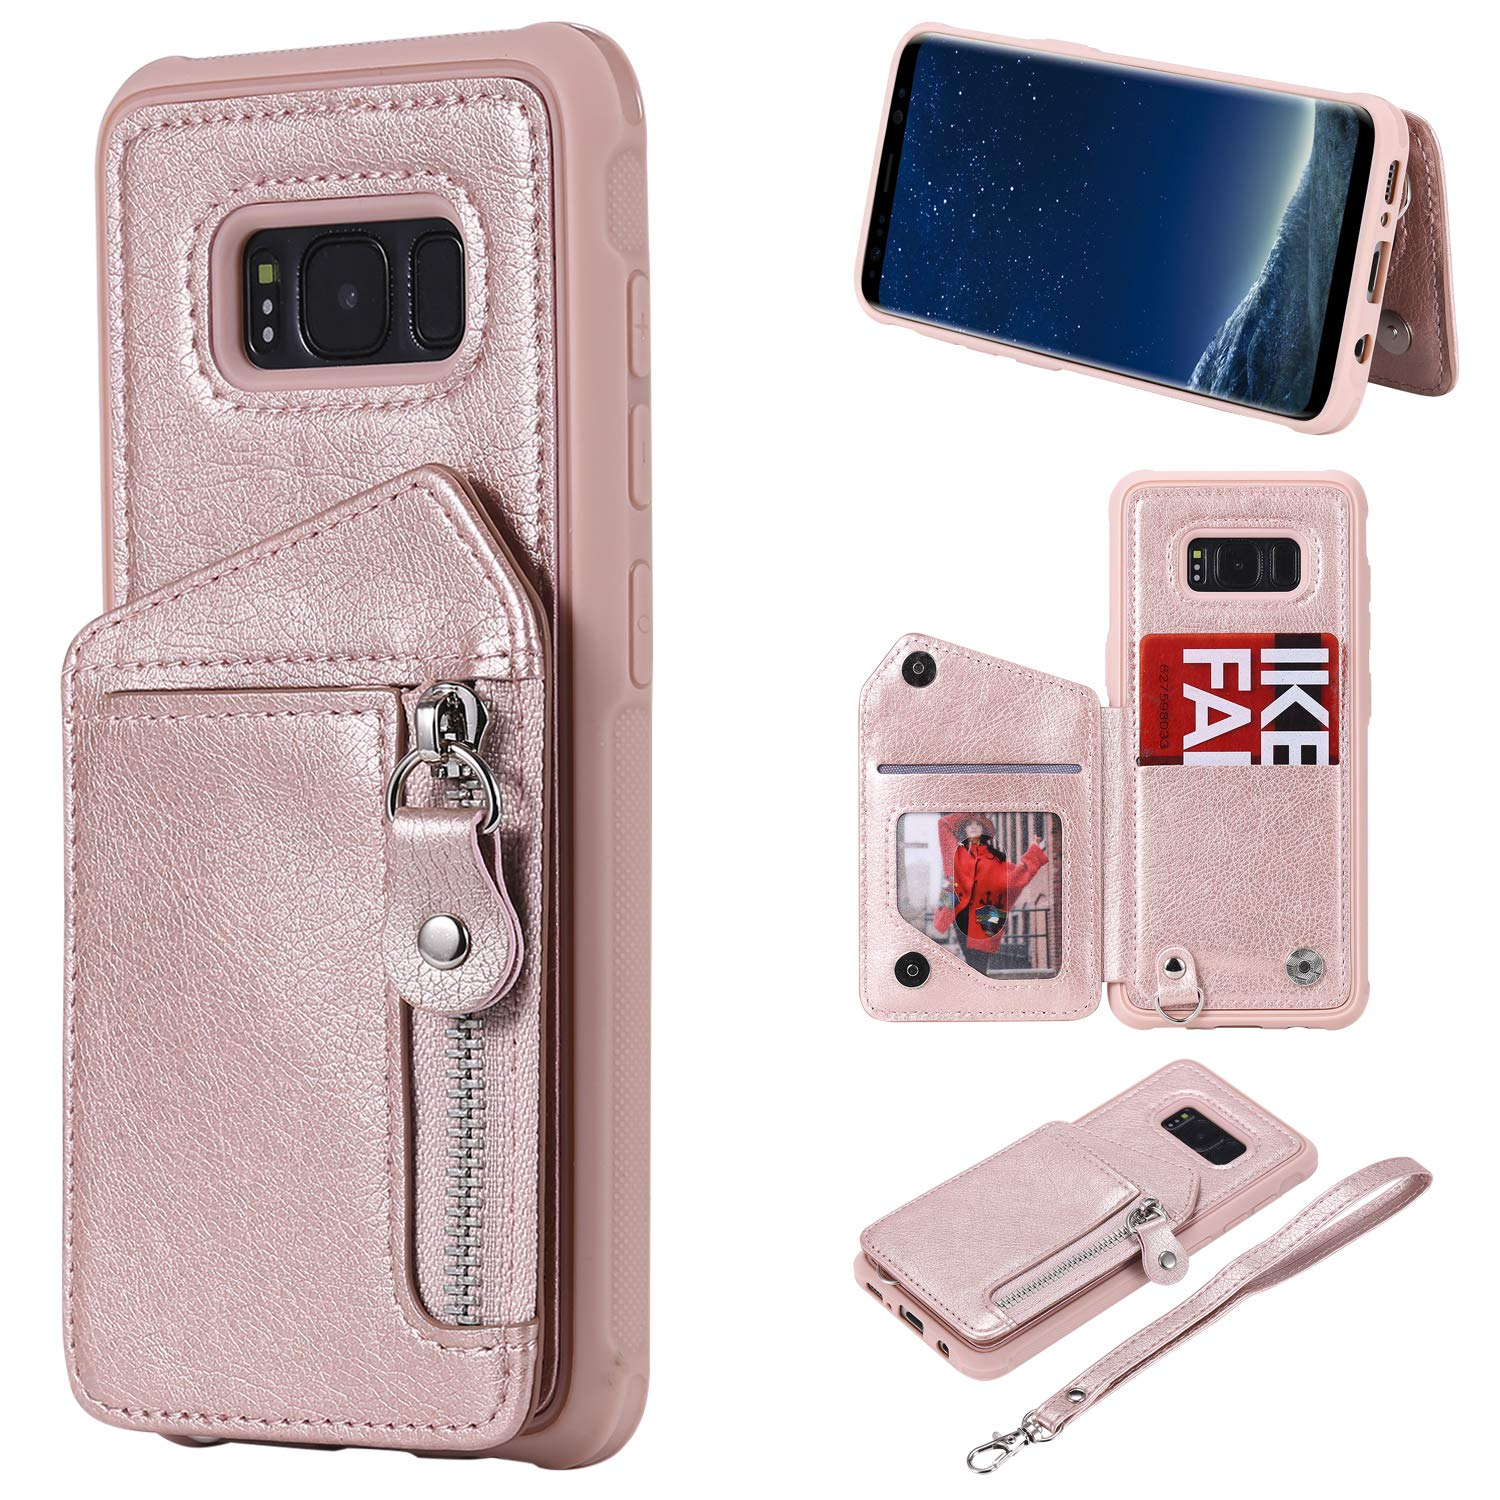 DAMONDY Case for Galaxy S8, Zipper Wallet Purse Card Holders Design Cover Soft Shockproof Bumper Folio Flip Leather Kickstand Clasp Wrist Strap Case for Samsung Galaxy S8 2017-Rose Gold by DAMONDY